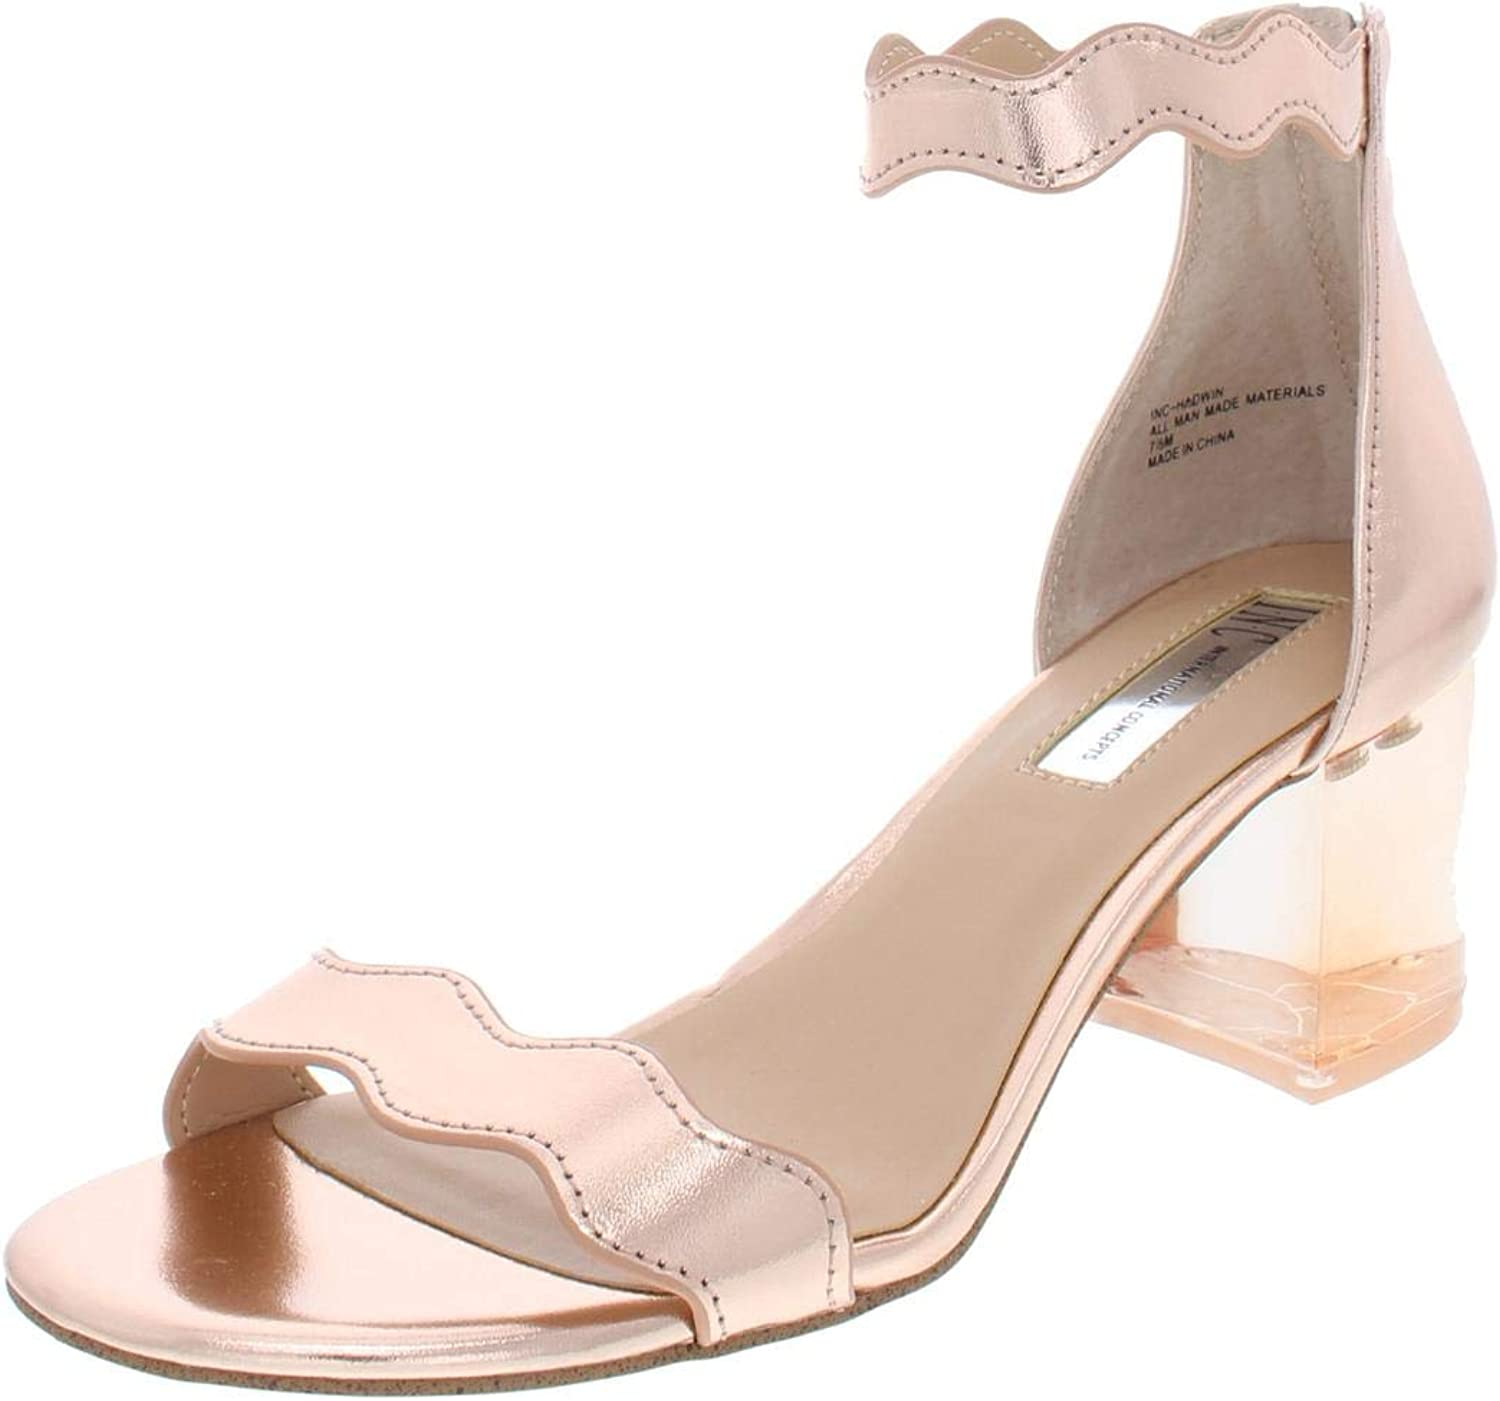 Inc Womens Hadwin Faux Leather Scalloped Heels Pink 7 Wide (C,D,W)